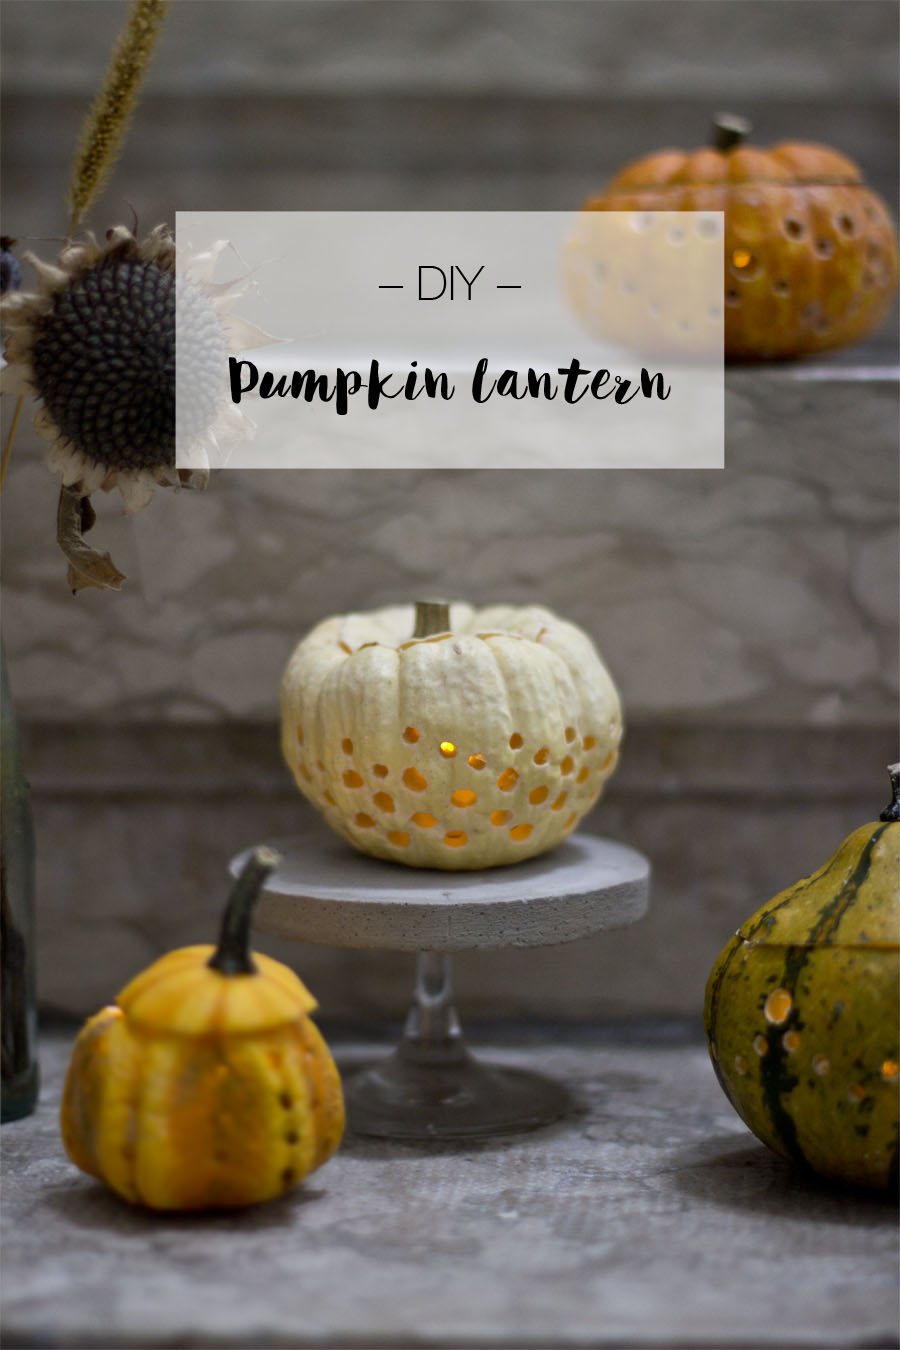 DIY pumpkin lantern | LOOK WHAT I MADE ...